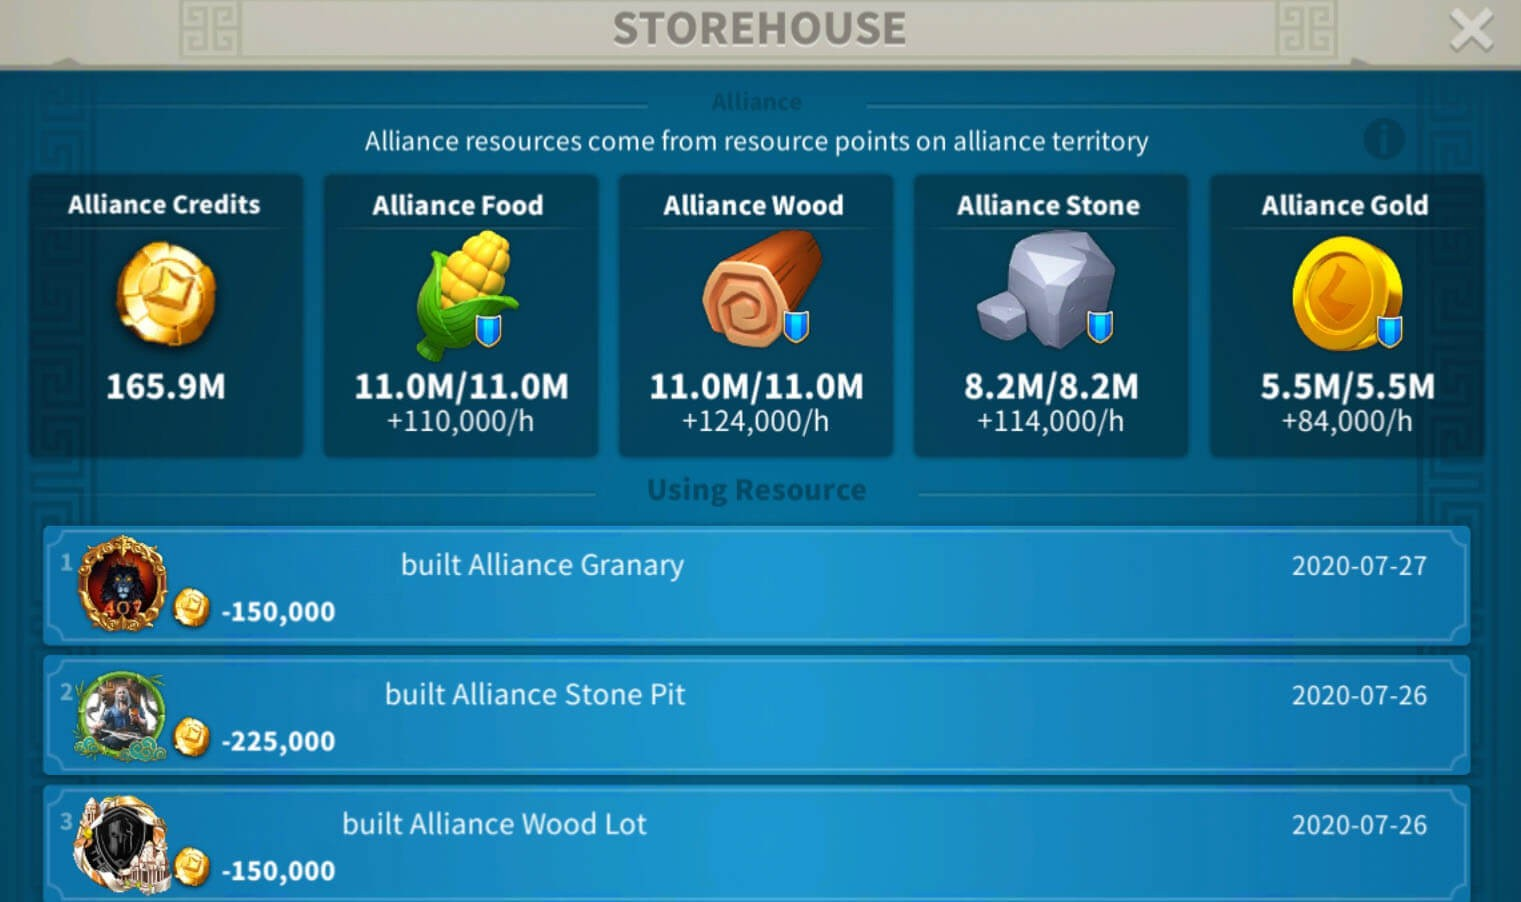 alliance storehouse